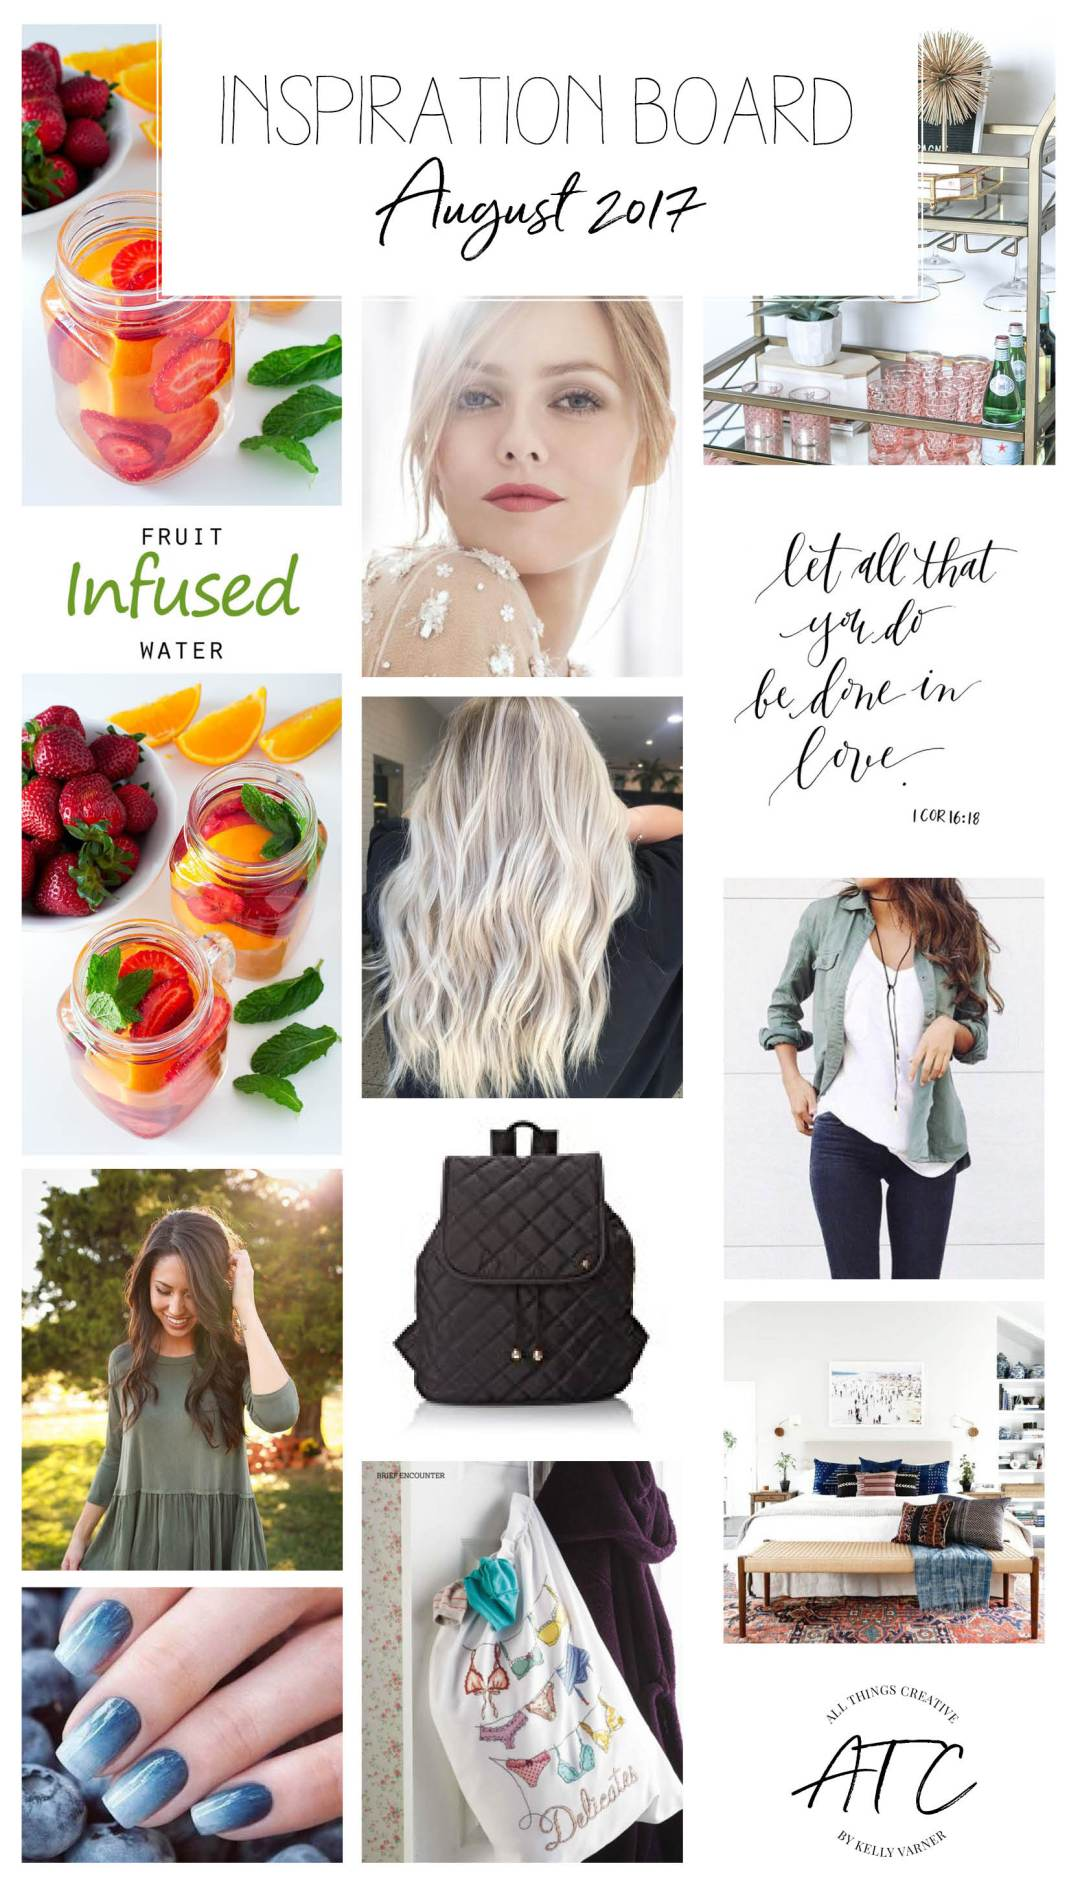 August inspiration board